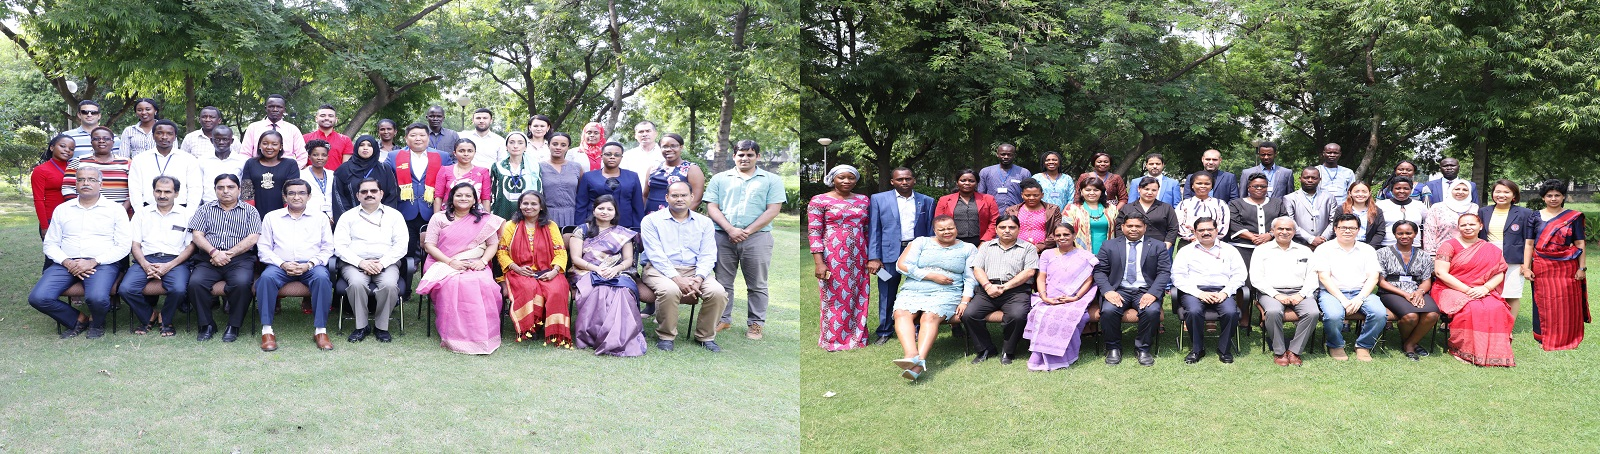 Two International Training Programmes on 'International Standards and Promotion of Gender Equality at the Workplace' from August 05-23, 2019 and 'Skill Development and Employment Generation' from September 02-20, 2019 conducted by the V.V. Giri National L